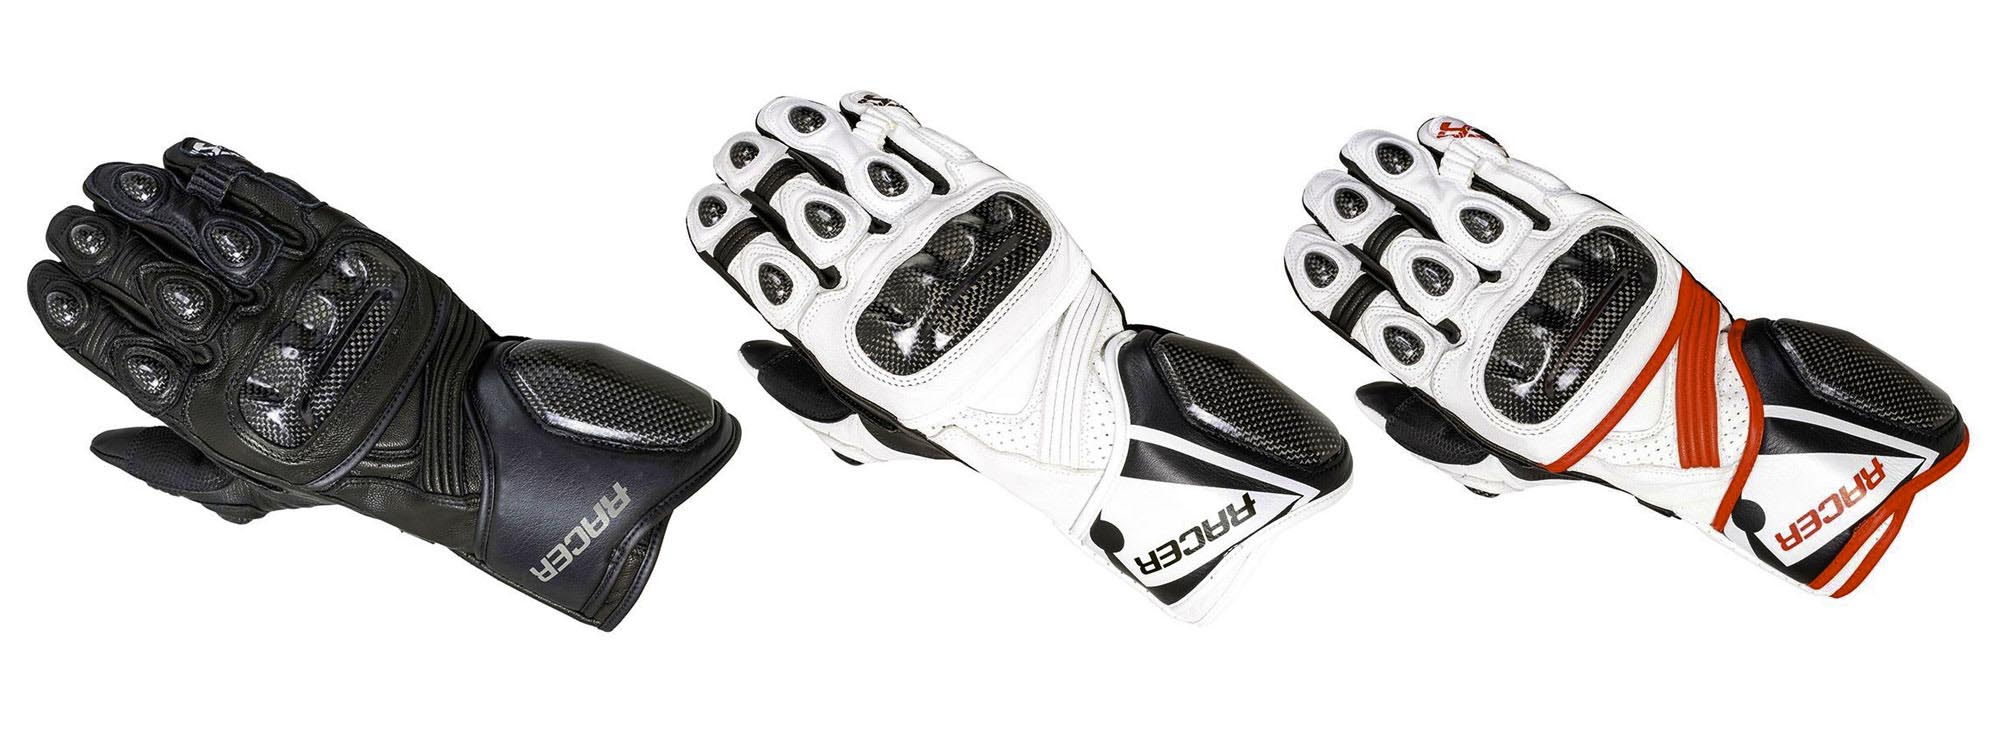 3 different colour options in which the Hi Per gloves are available